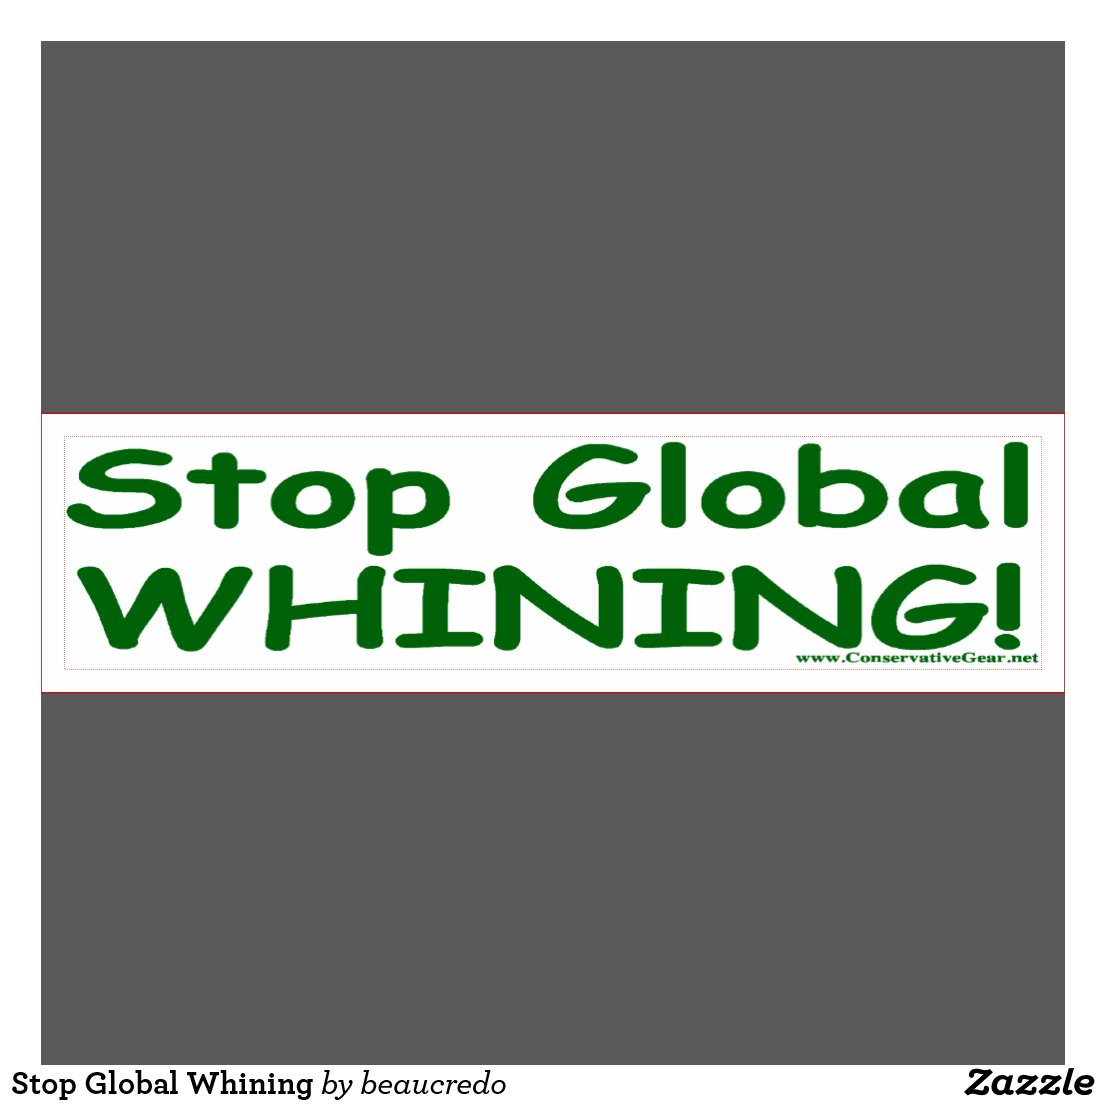 http://rlv.zcache.com/stop_global_whining_car_bumper_sticker-ra079f838c0eb4e39be8c0b4677096bfb_v9uwb_1024.jpg?rlvnet=1